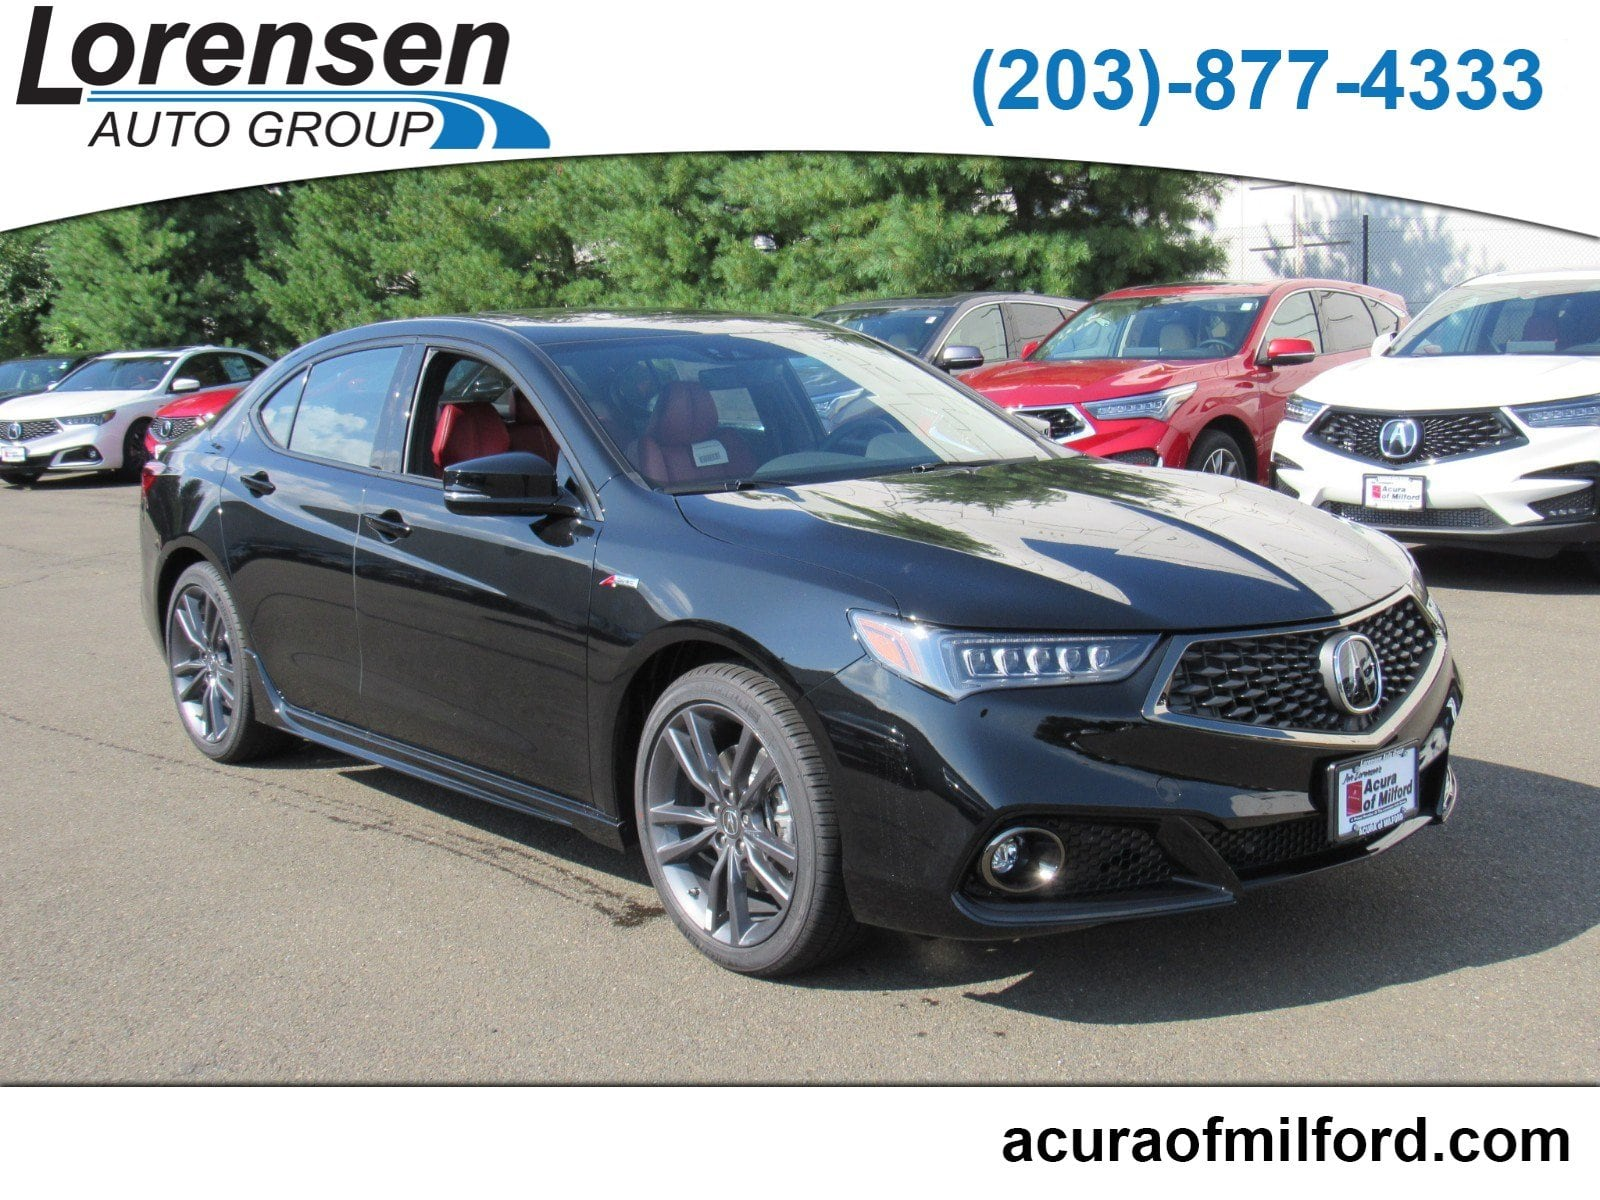 New 2019 Acura TLX 3 5 V 6 9 AT SH AWD with A SPEC RED 3 5L SH AWD w